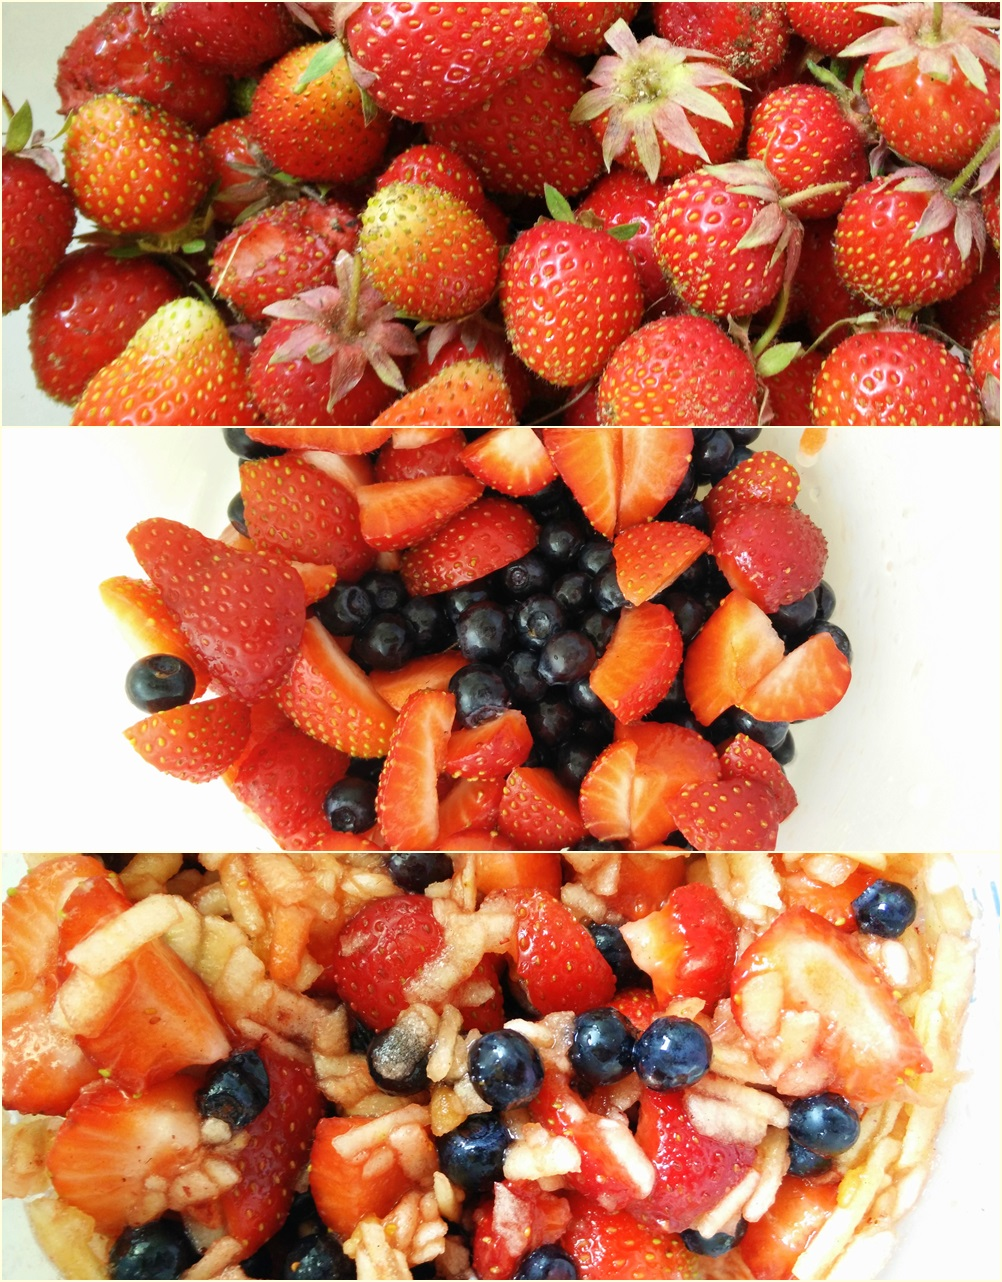 Berry_Strawberry_Blueberry_pie_recipe_Zala_Zagoricnik_2